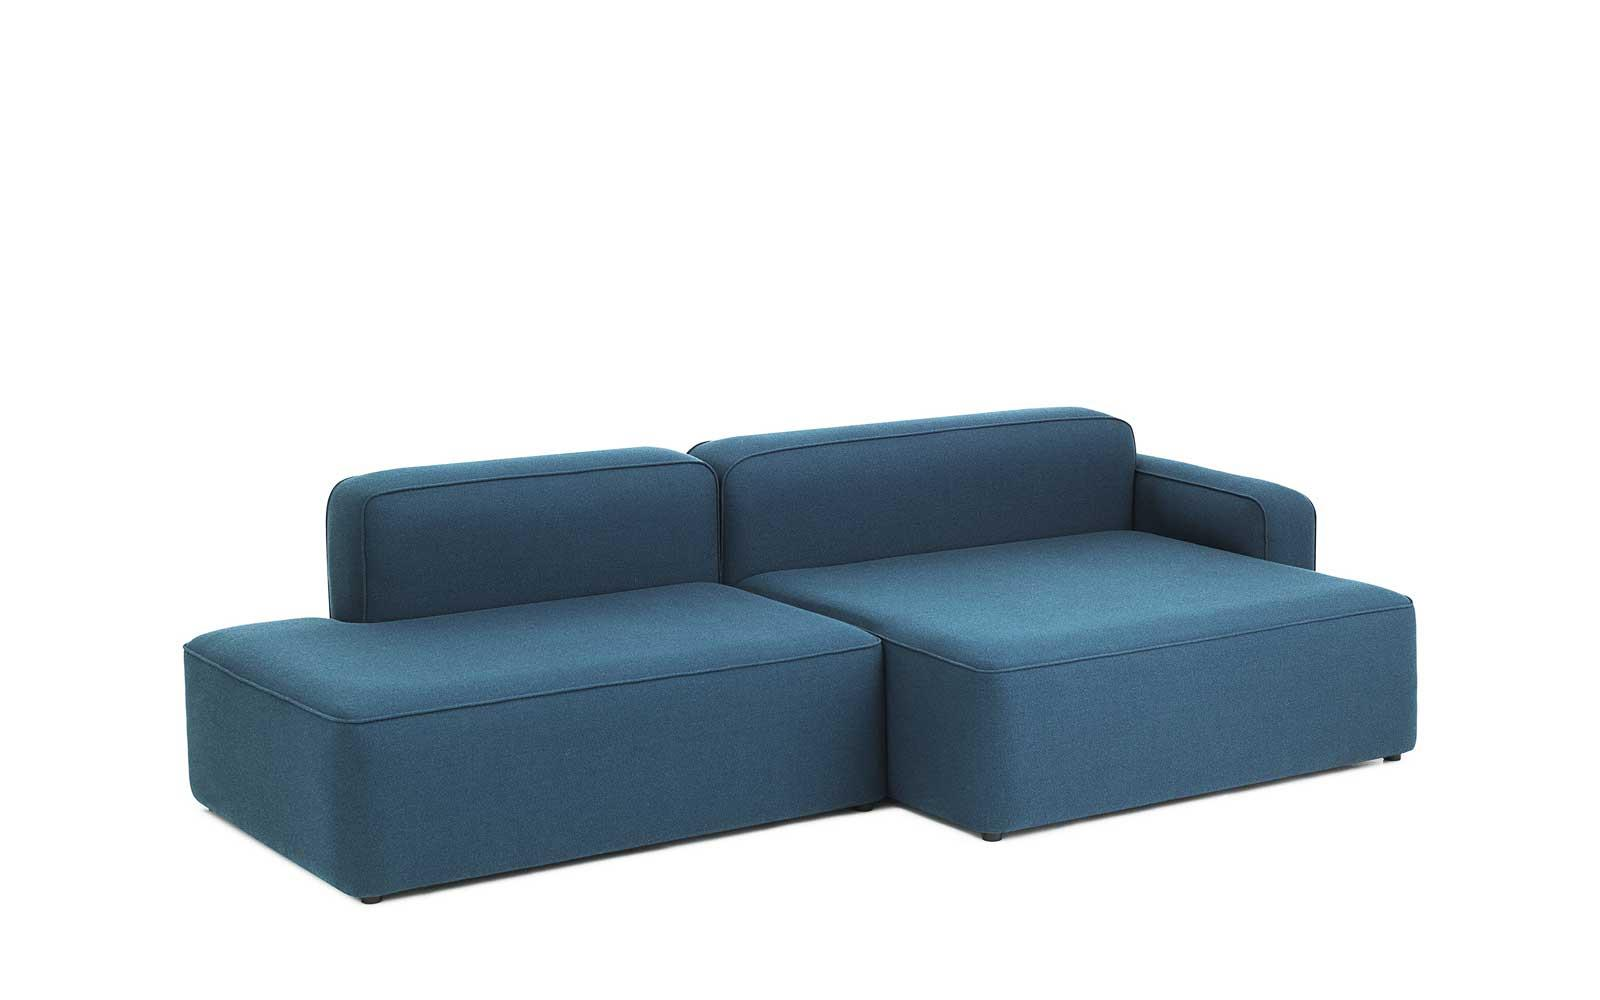 Rope Sofa Chaise Longue Right Fame Hybrid